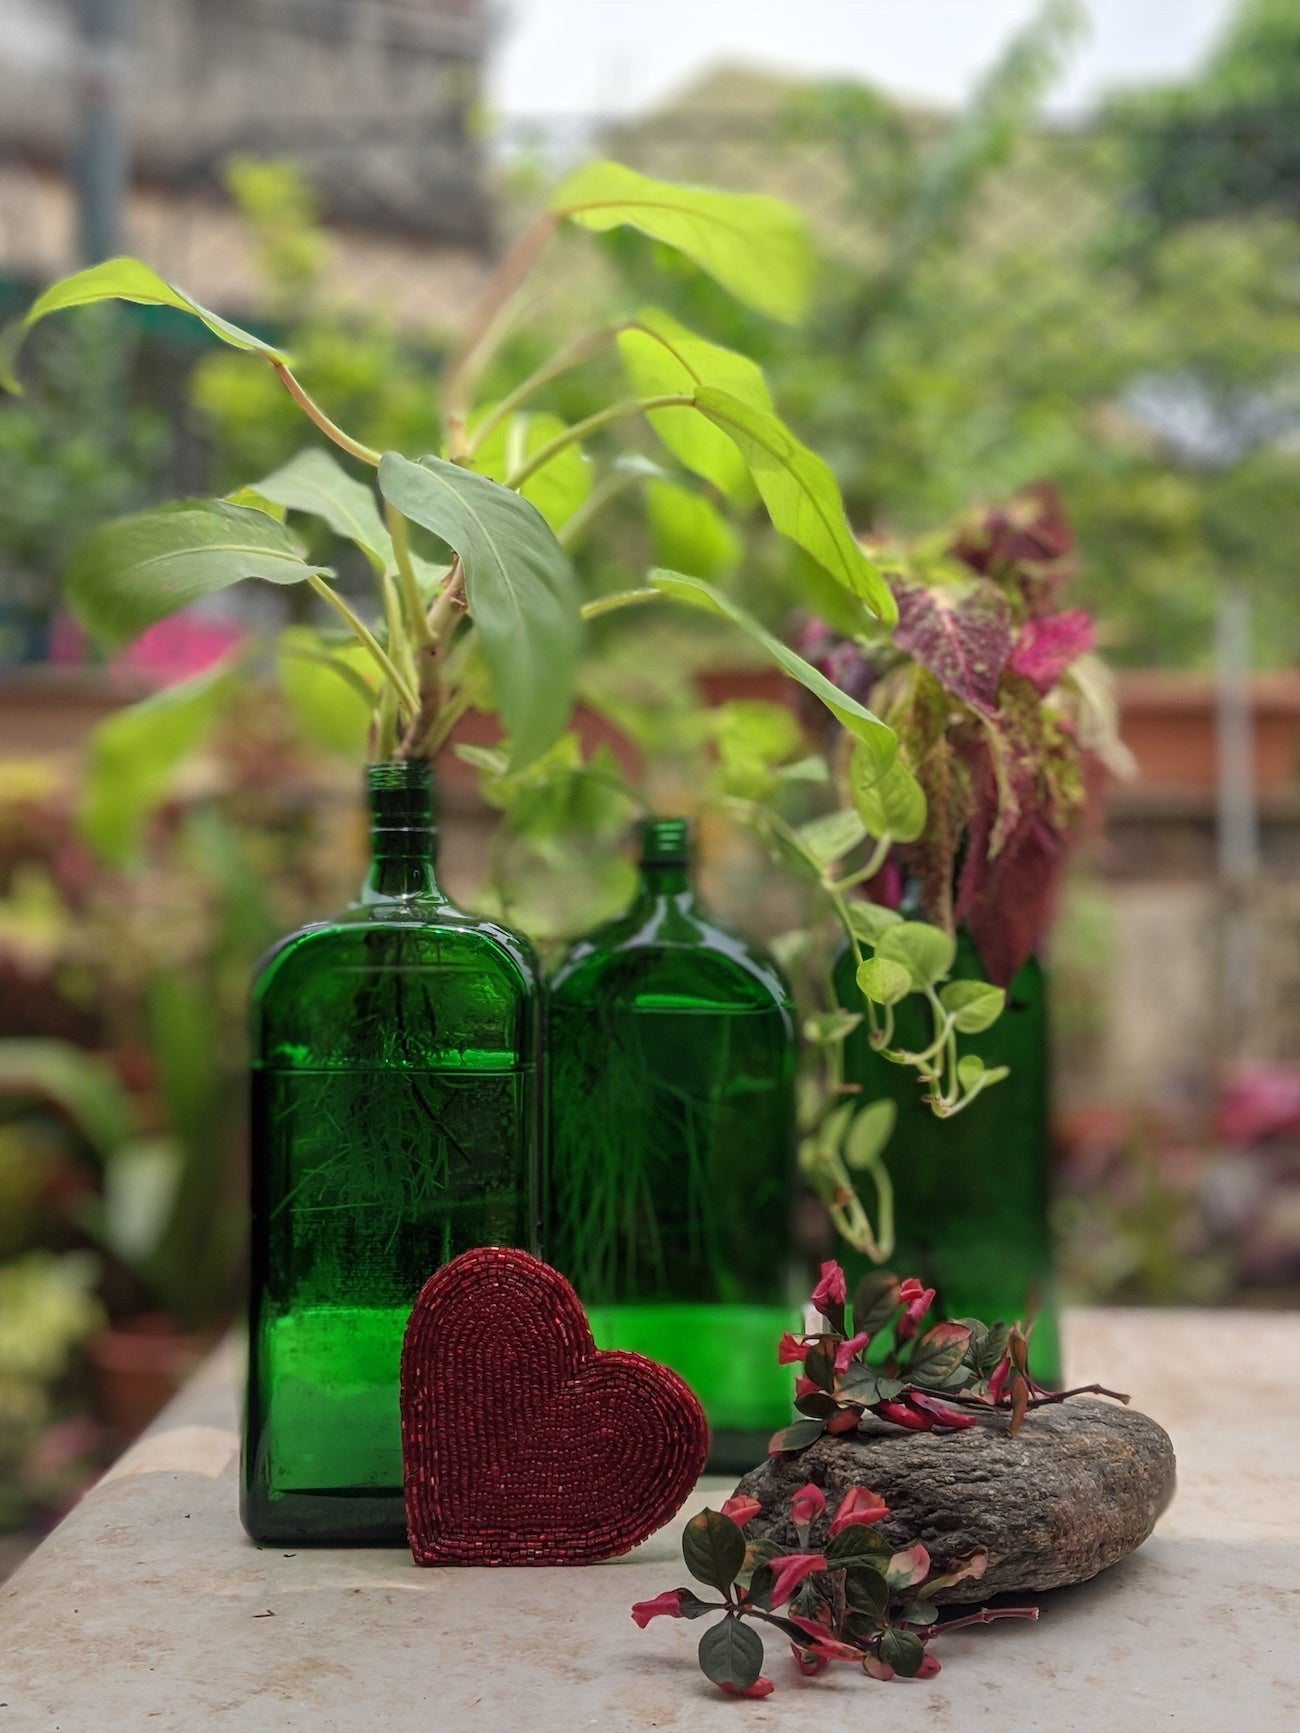 green bottles and plants